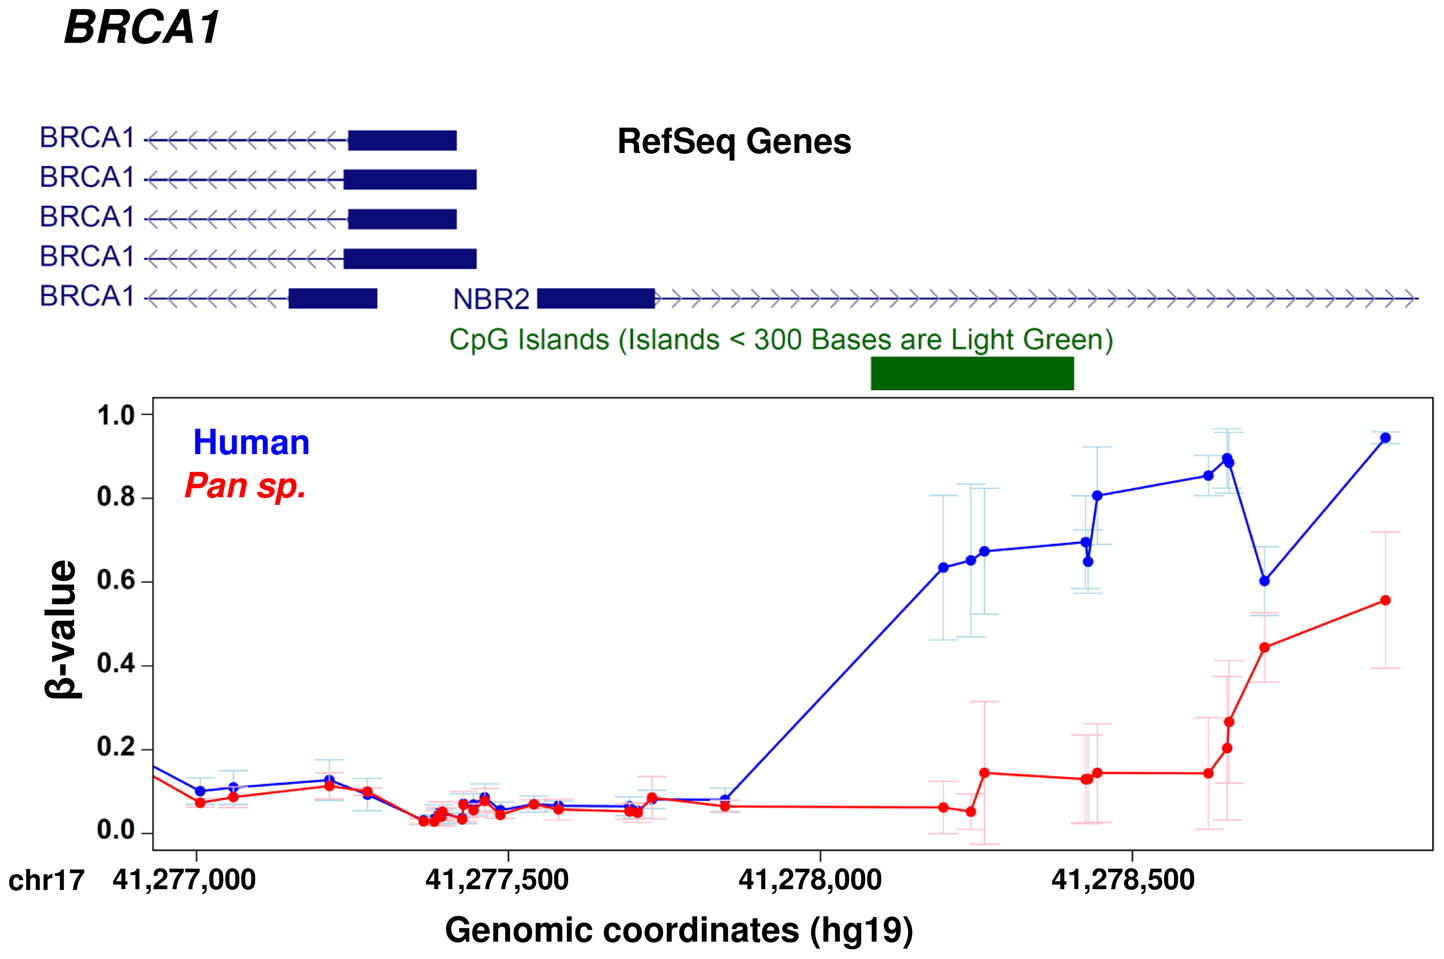 Example gene showing methylation differences between human and chimpanzee at promoter level.